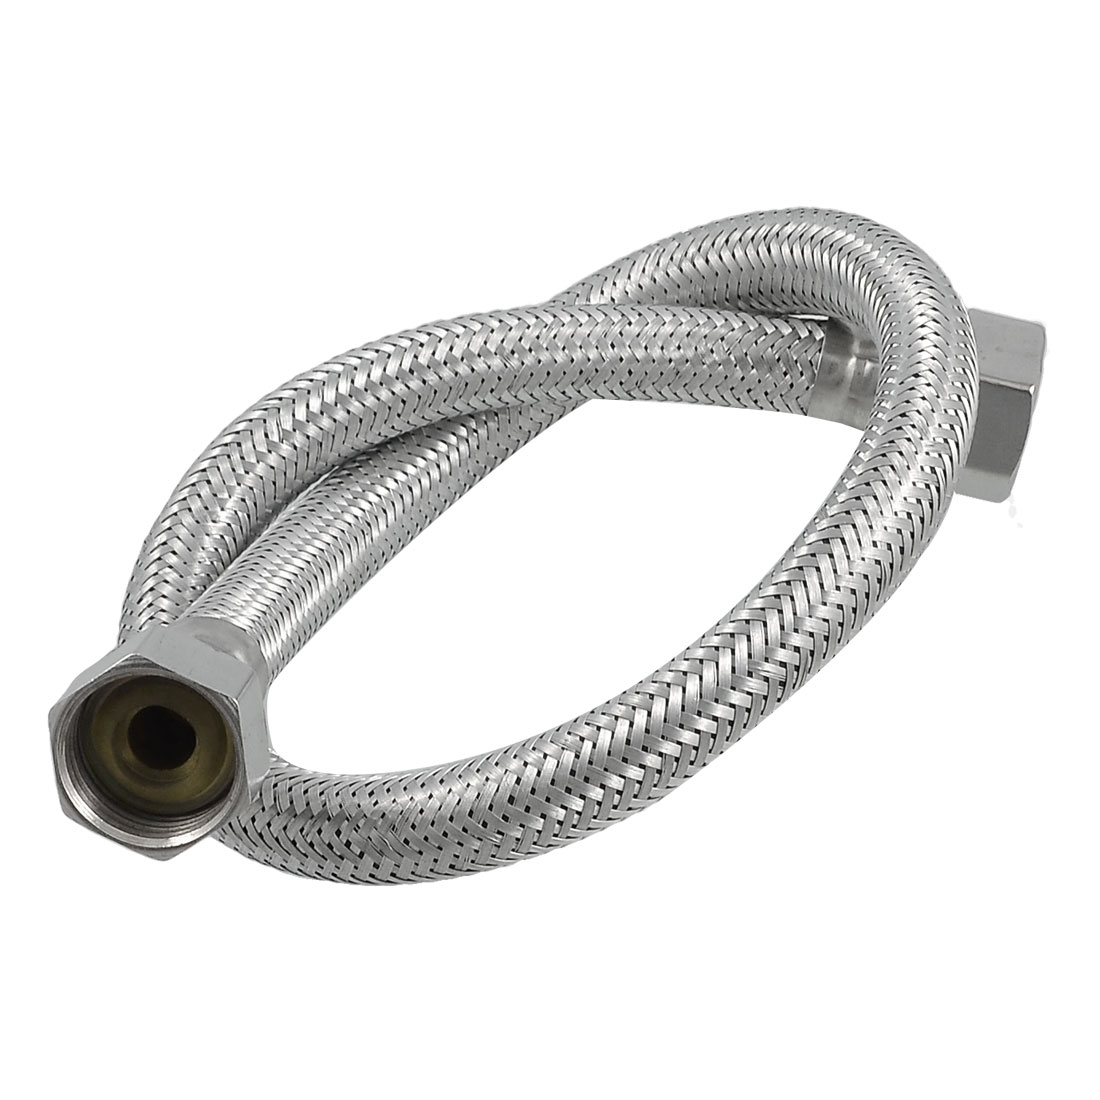 "0.5M 20"" Long 1/2"" NPT Thread Metal Braided Hose for Water Heater Shower"